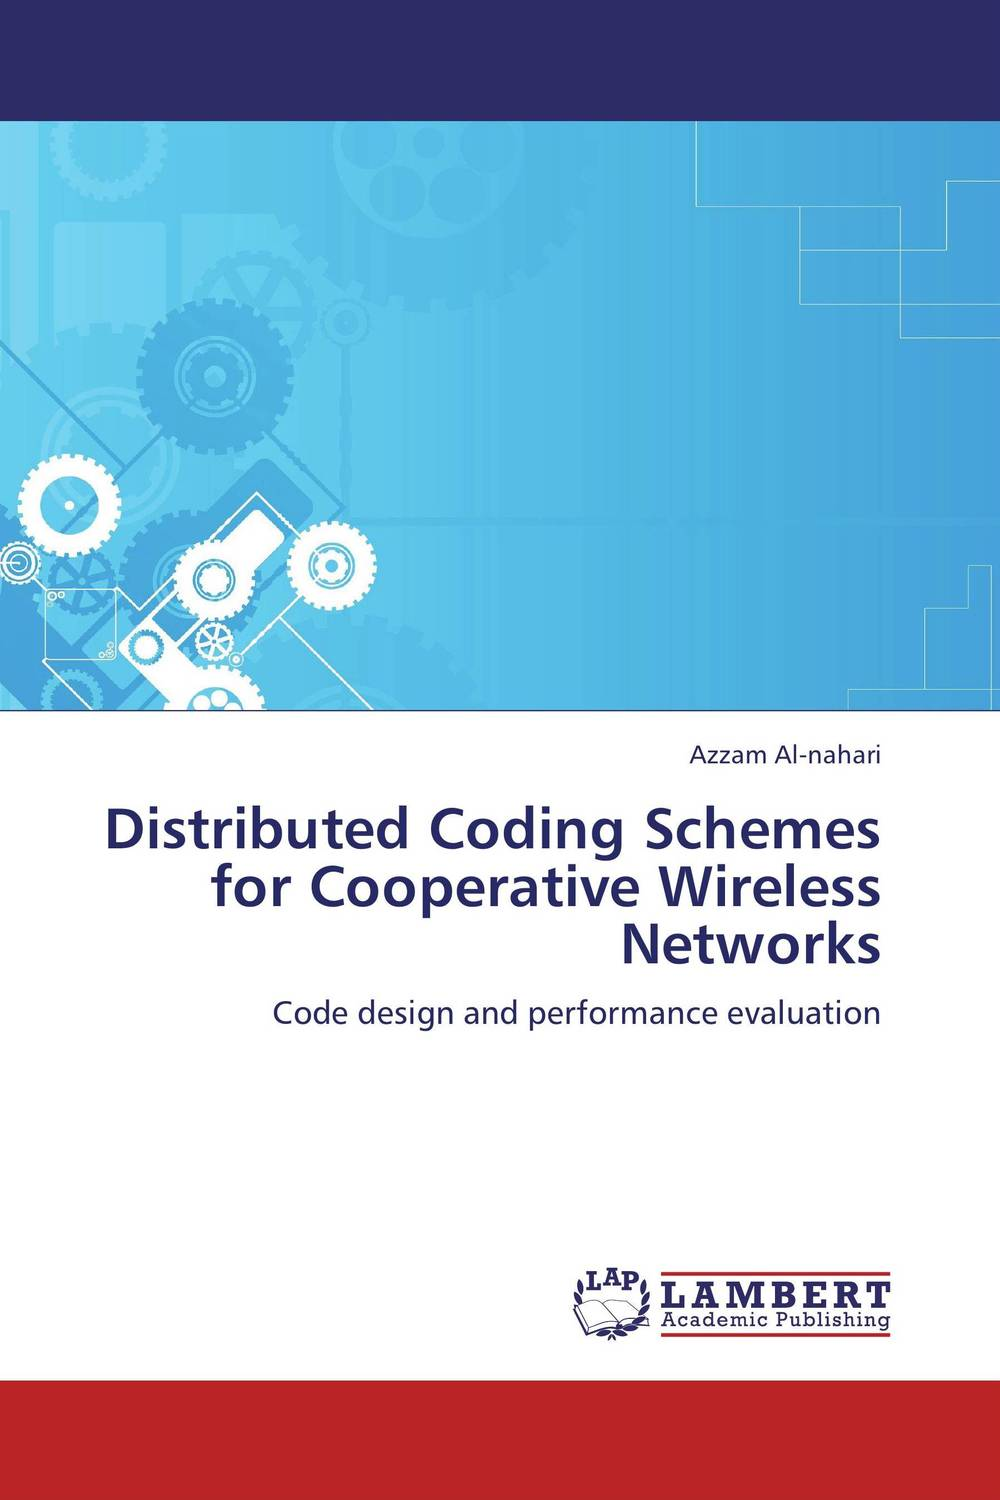 Distributed Coding Schemes for Cooperative Wireless Networks